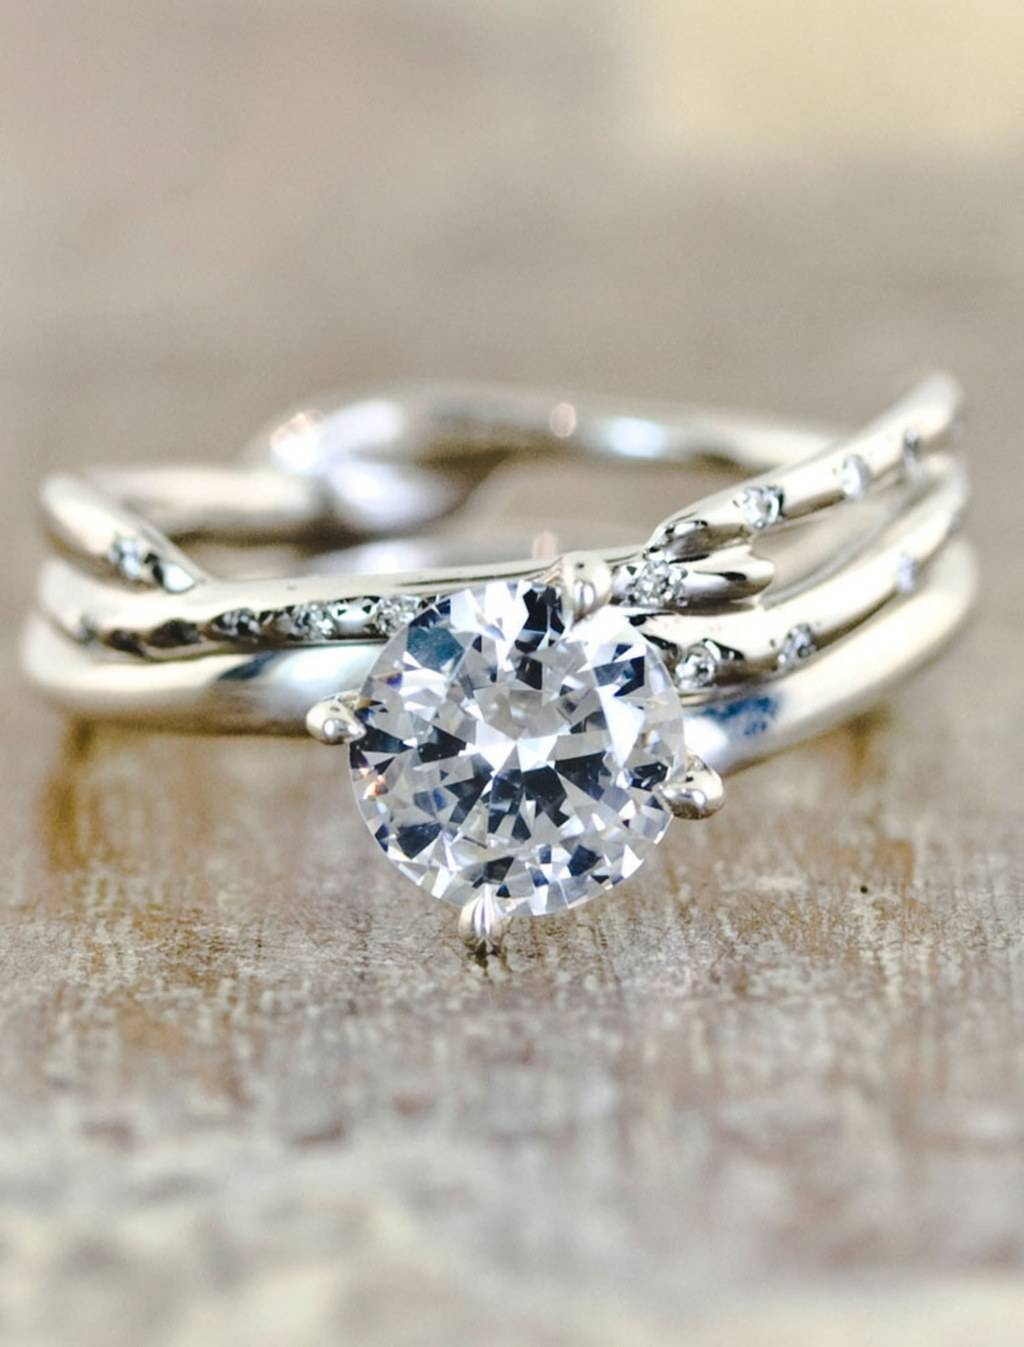 Unique Engagement Rings: Rustic Engagement Rings, Eco Friendly Inside Rustic Engagement Rings (Gallery 3 of 15)